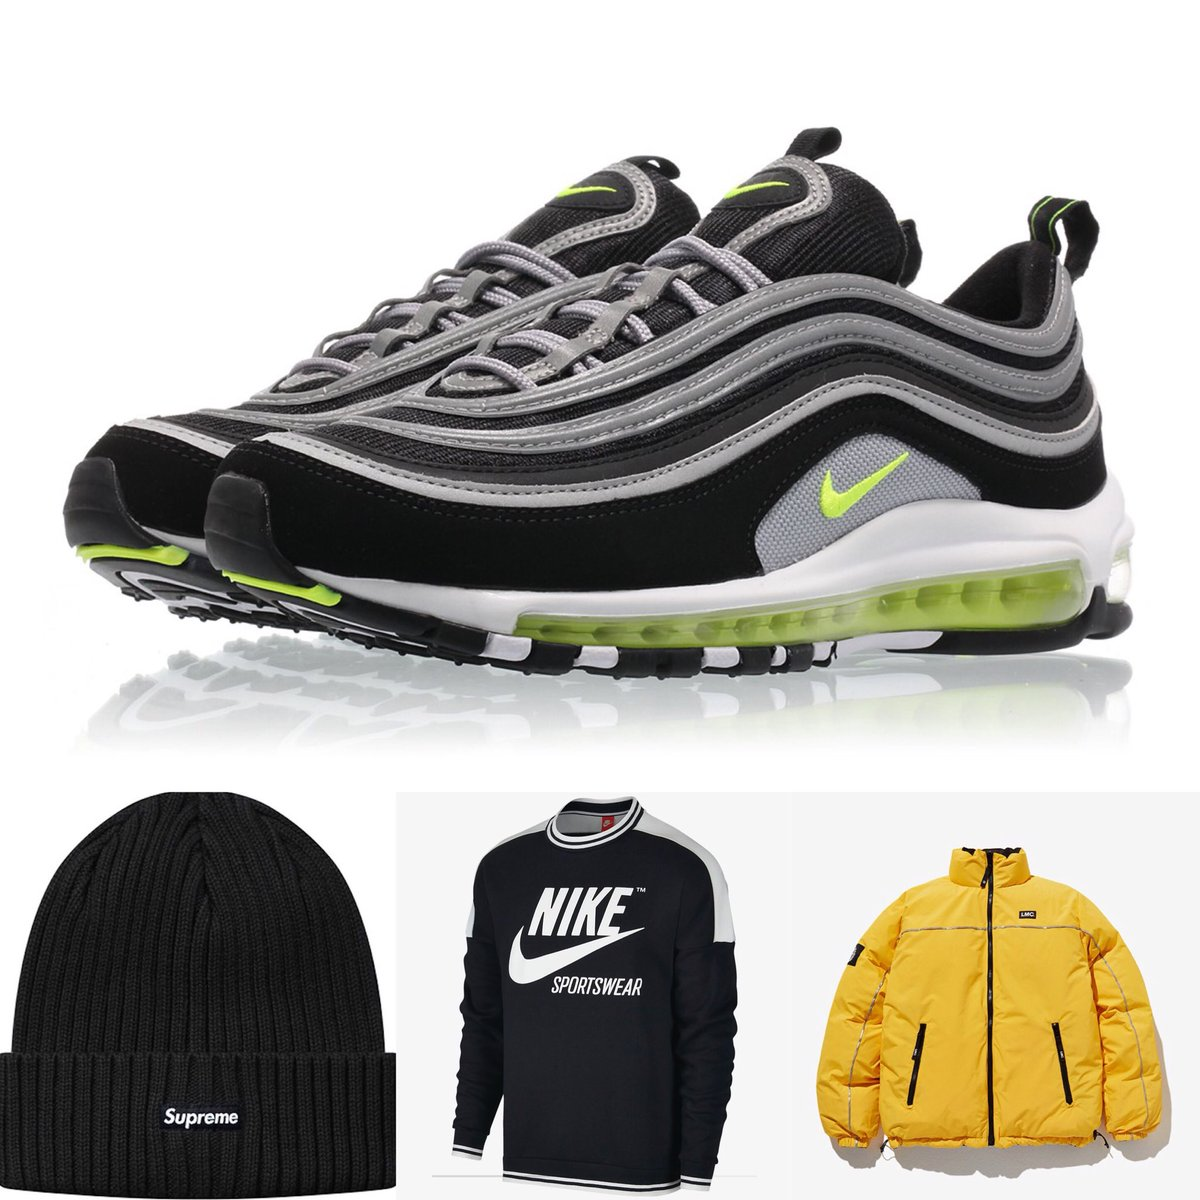 brand new 951ac ff9e2 180129 SUHO Nike Air Max 97 Japan OG - Volt Supreme ribbed beanie in Black  Nike Sportswear Archive Mens Crew LMC (Lost Management Cities) retro  reversible ...